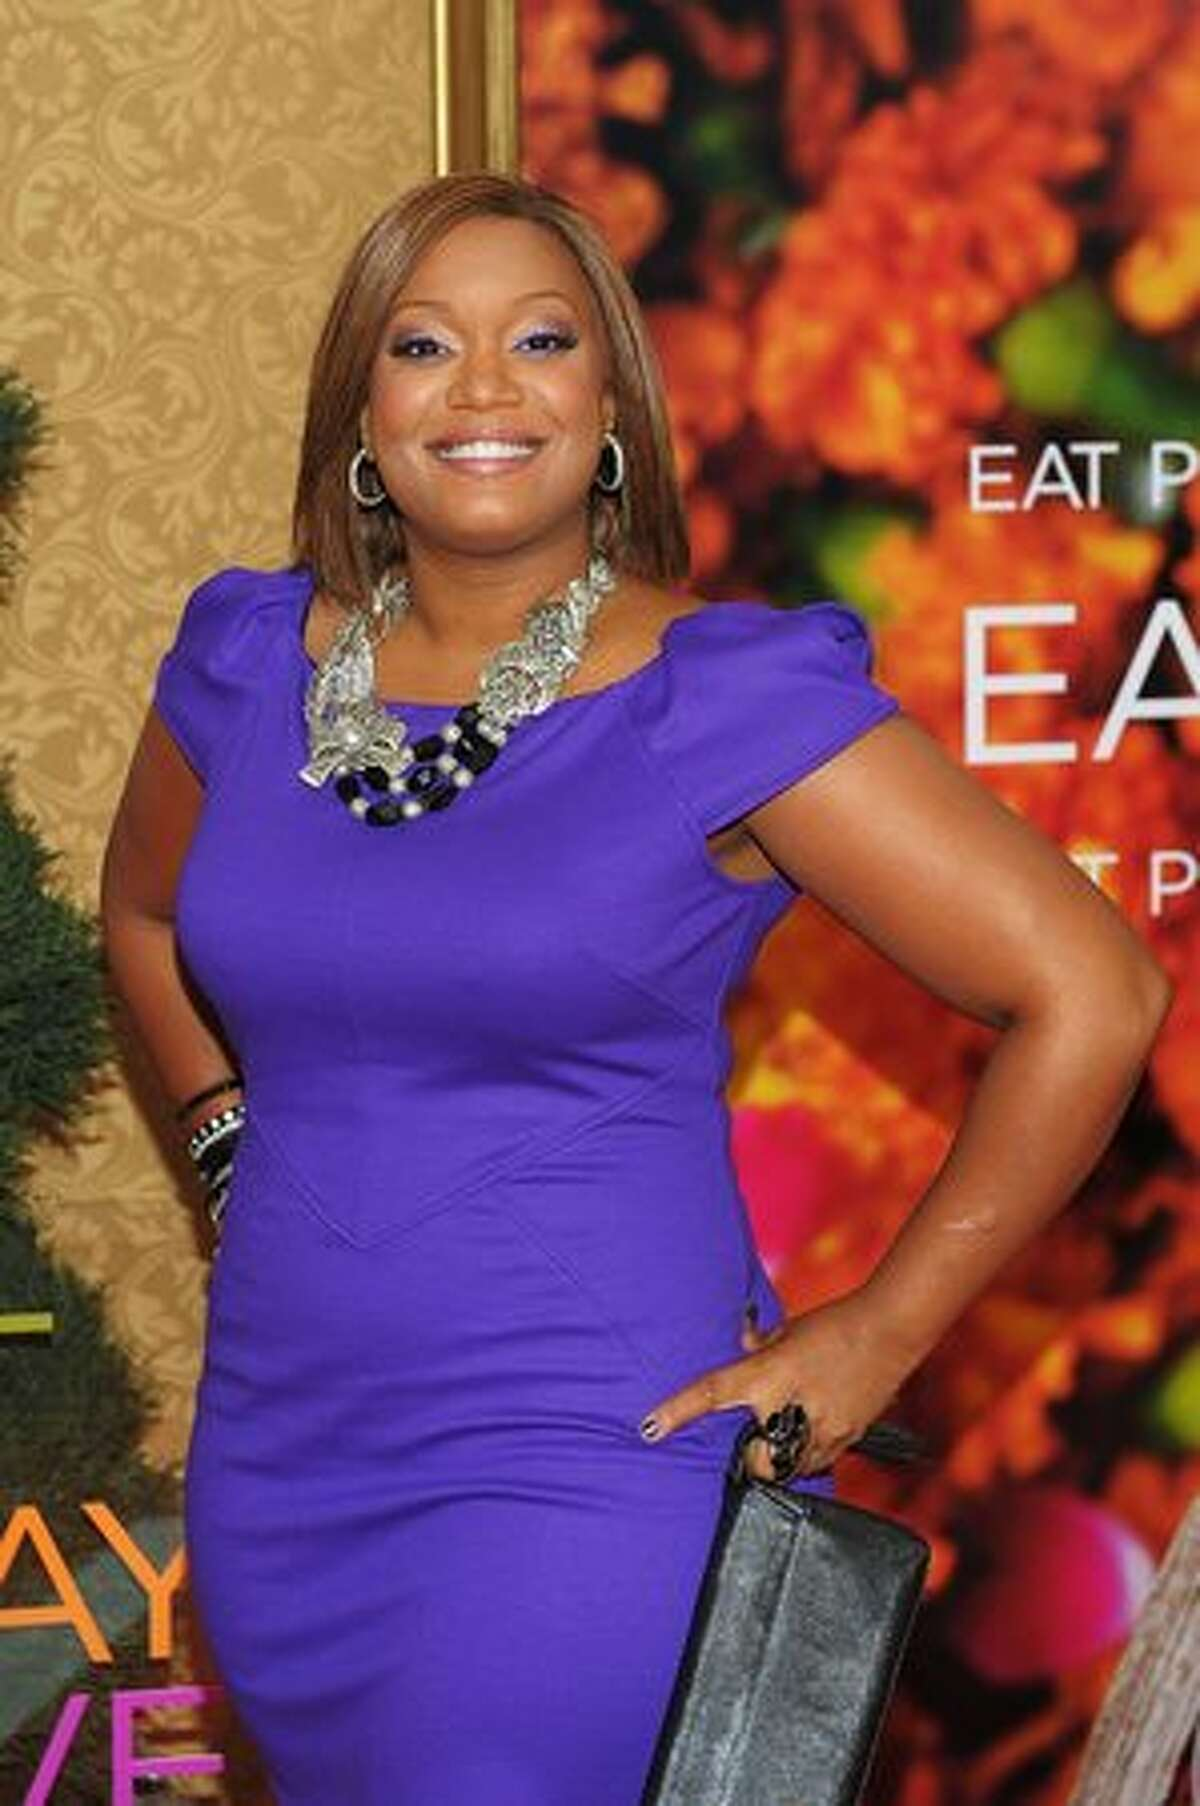 Sunny Anderson - (U.S. Air Force 1993-97) Long before becoming a Food Network star, Anderson joined the U.S. Air Force and worked as a radio broadcaster in Seoul, South Korea and in San Antonio, Texas. - en.wikipedia.org